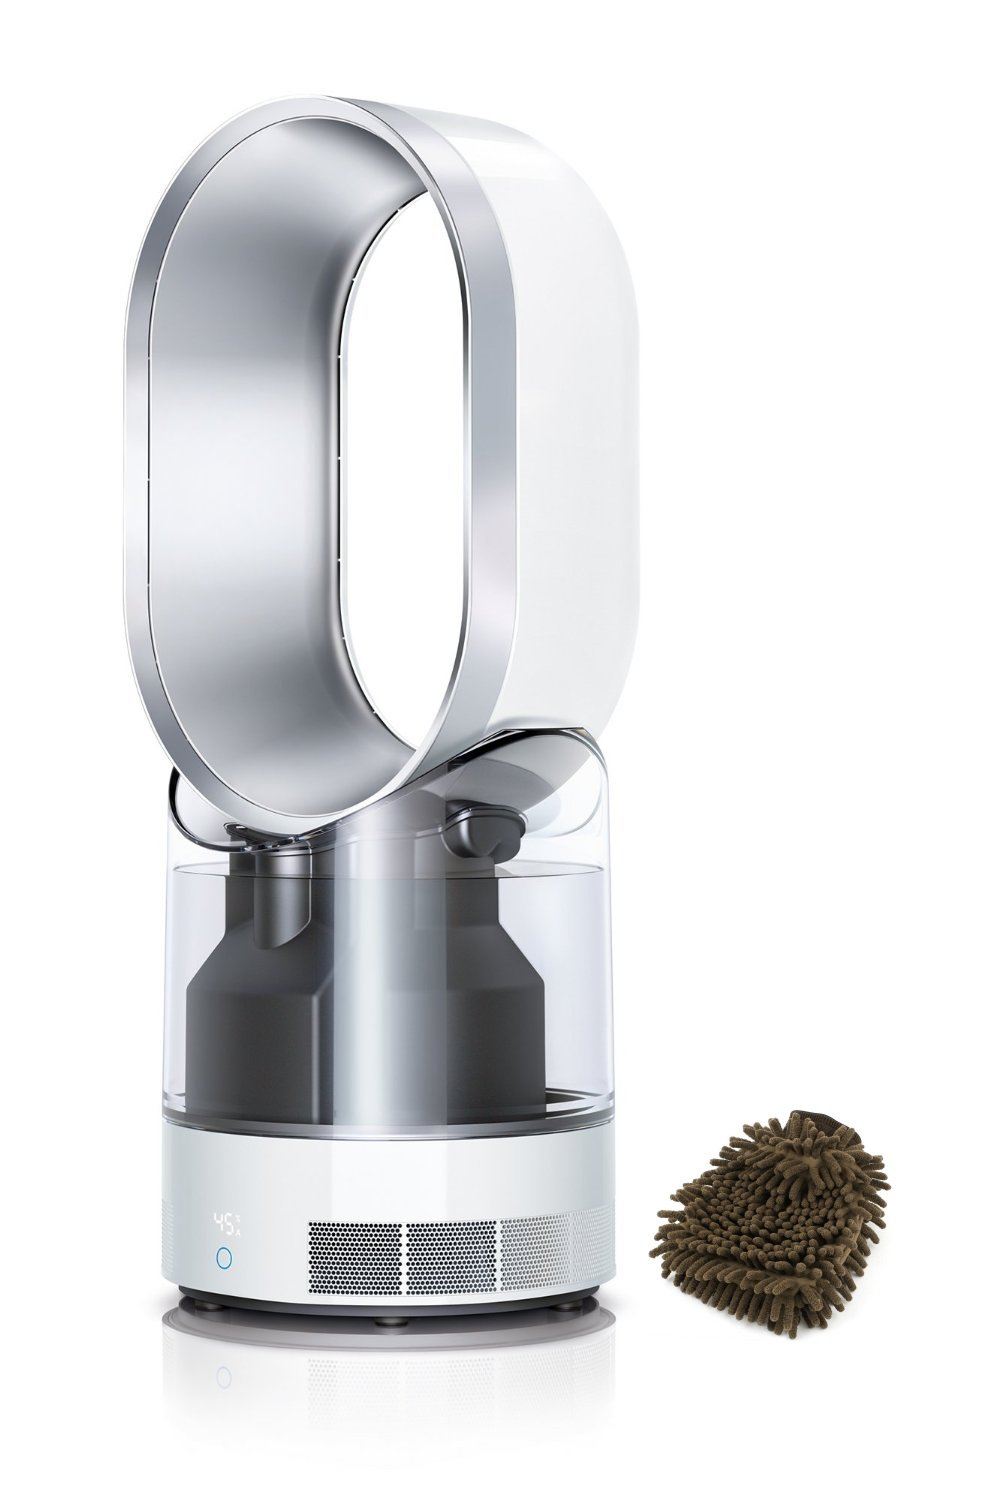 Dyson AM10 Best Humidifier Review by www.snoremagazine.com